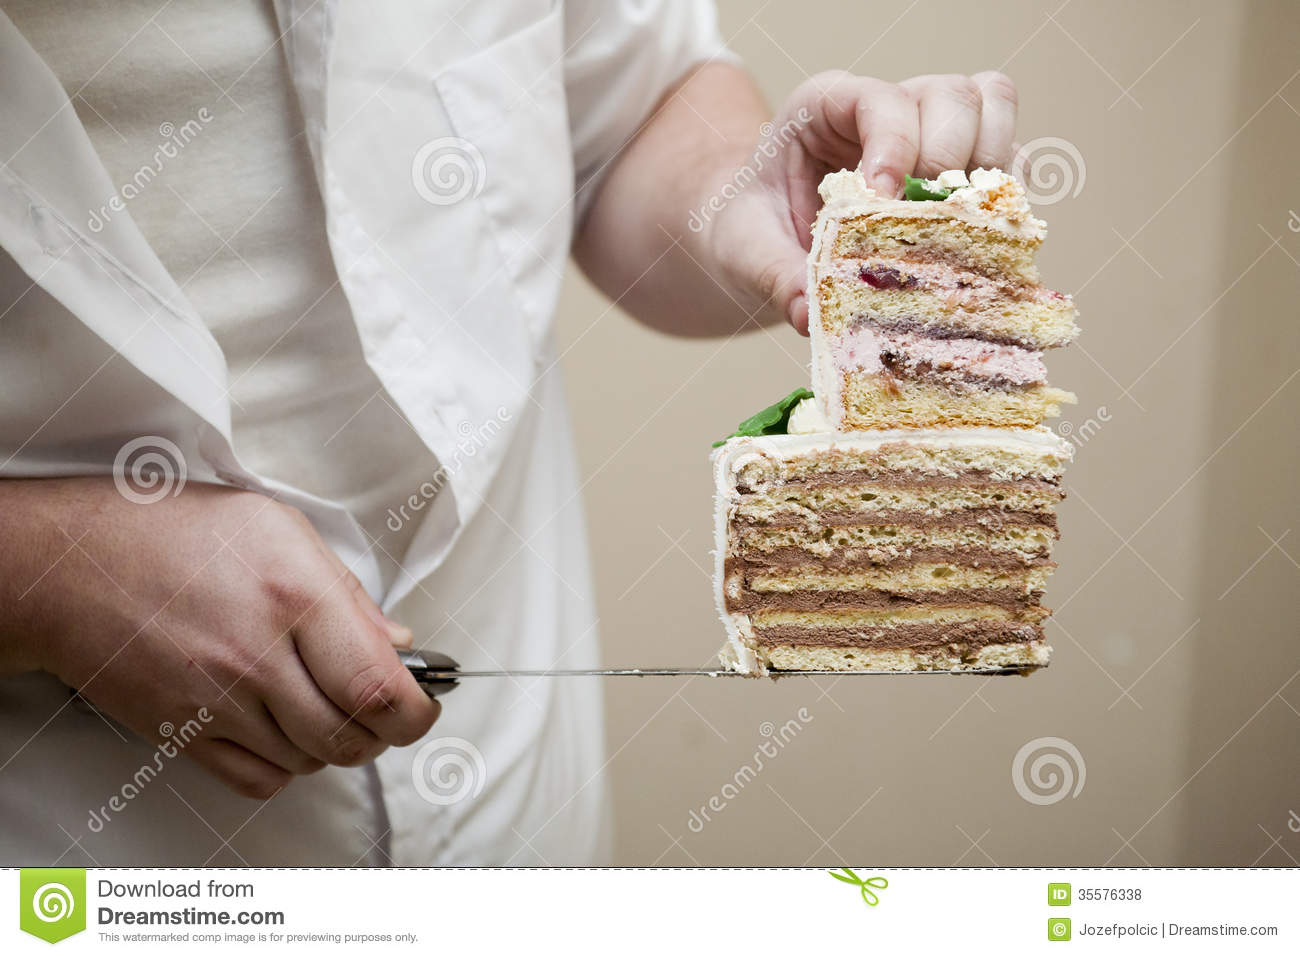 Chef Holding Cake Cuttings Royalty Free Stock Photos Image 35576338